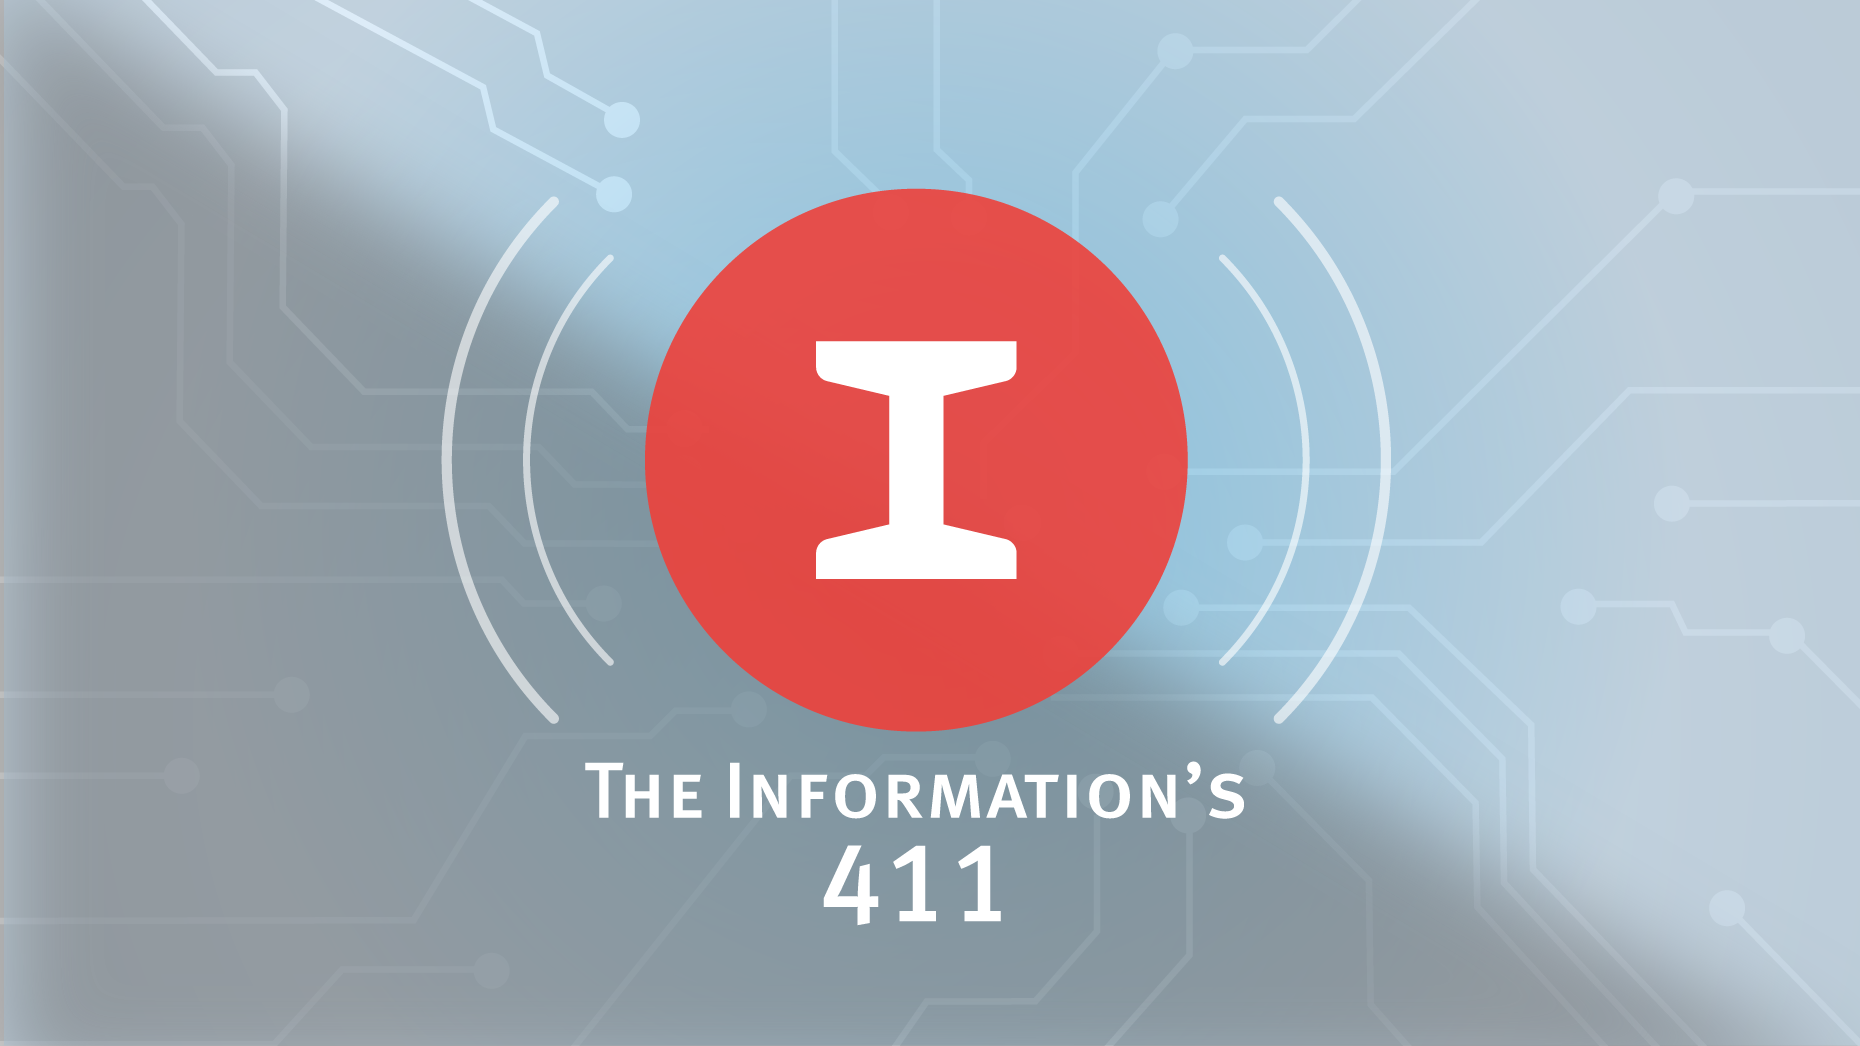 The Information's 411 — Quibis and Bits